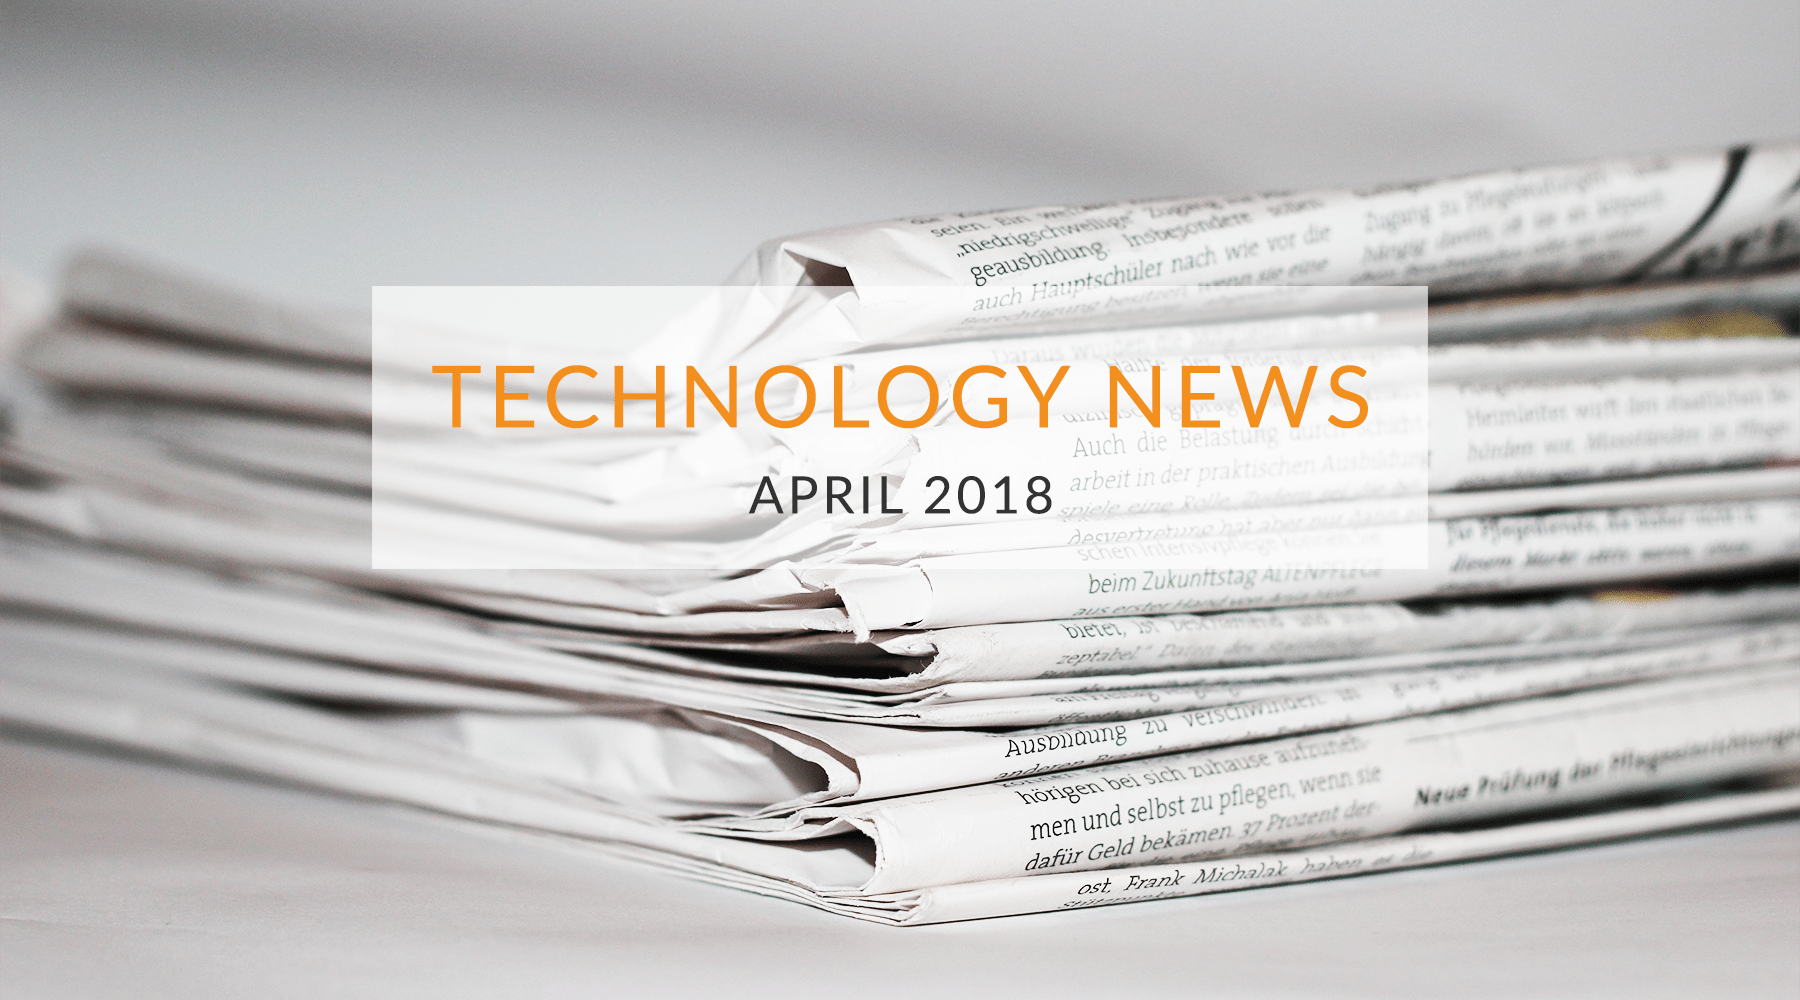 Technology News - April 2018